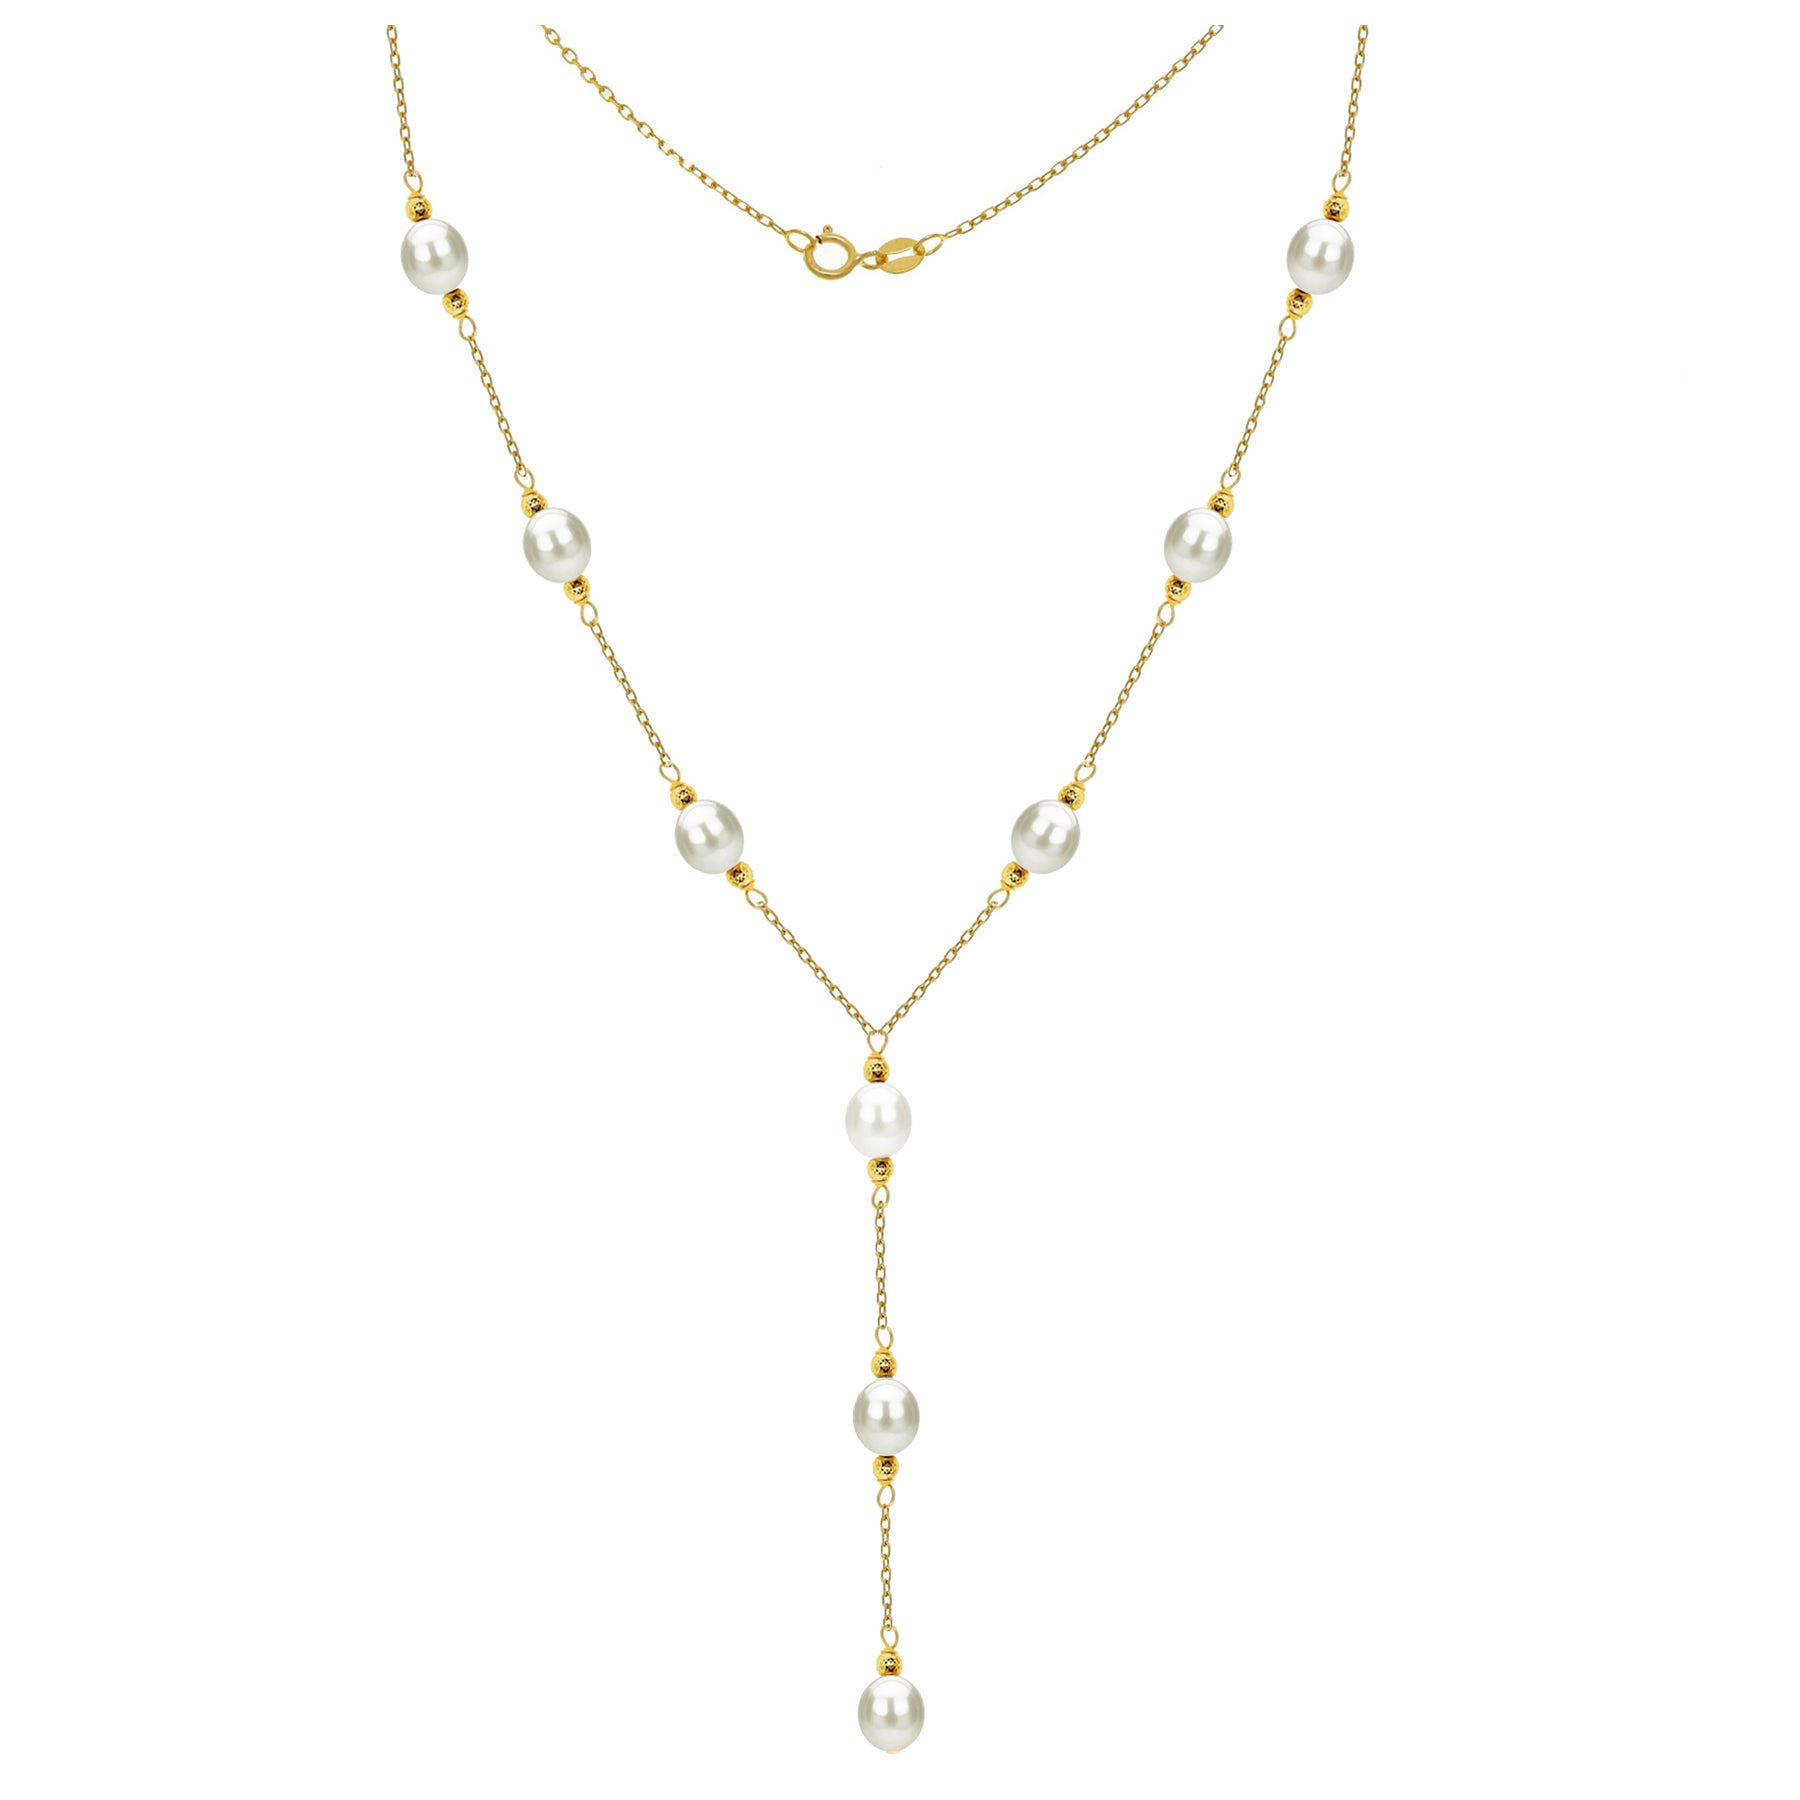 New 8-9mm White fresh water Cultured Pearl women/'s jewelry Necklace long 18 inch